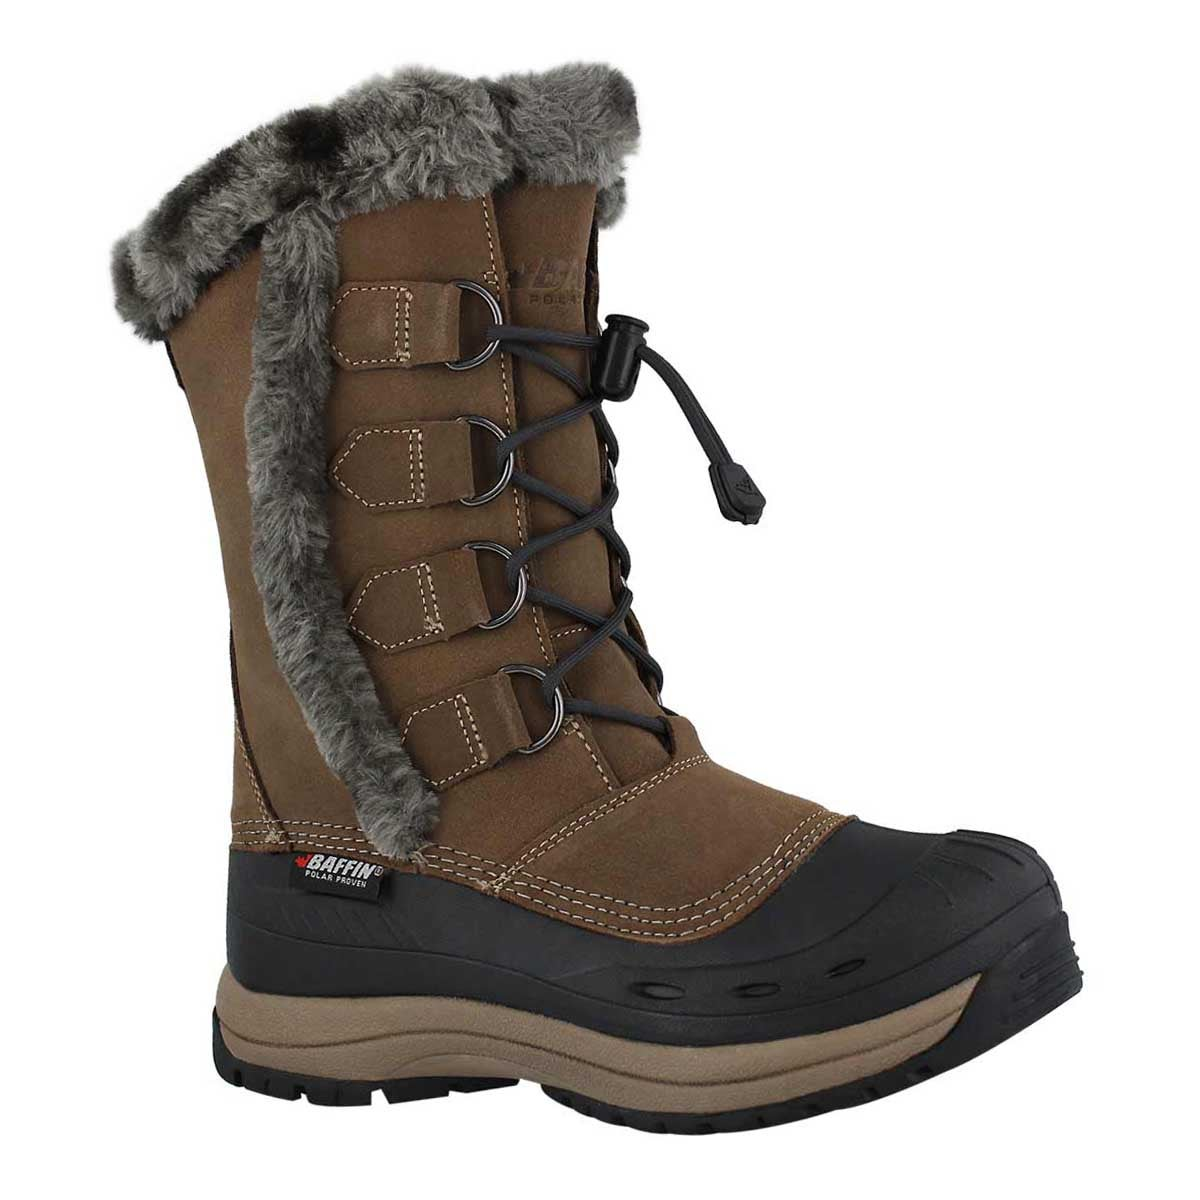 Lds Chloe taupe wtpf winter boot